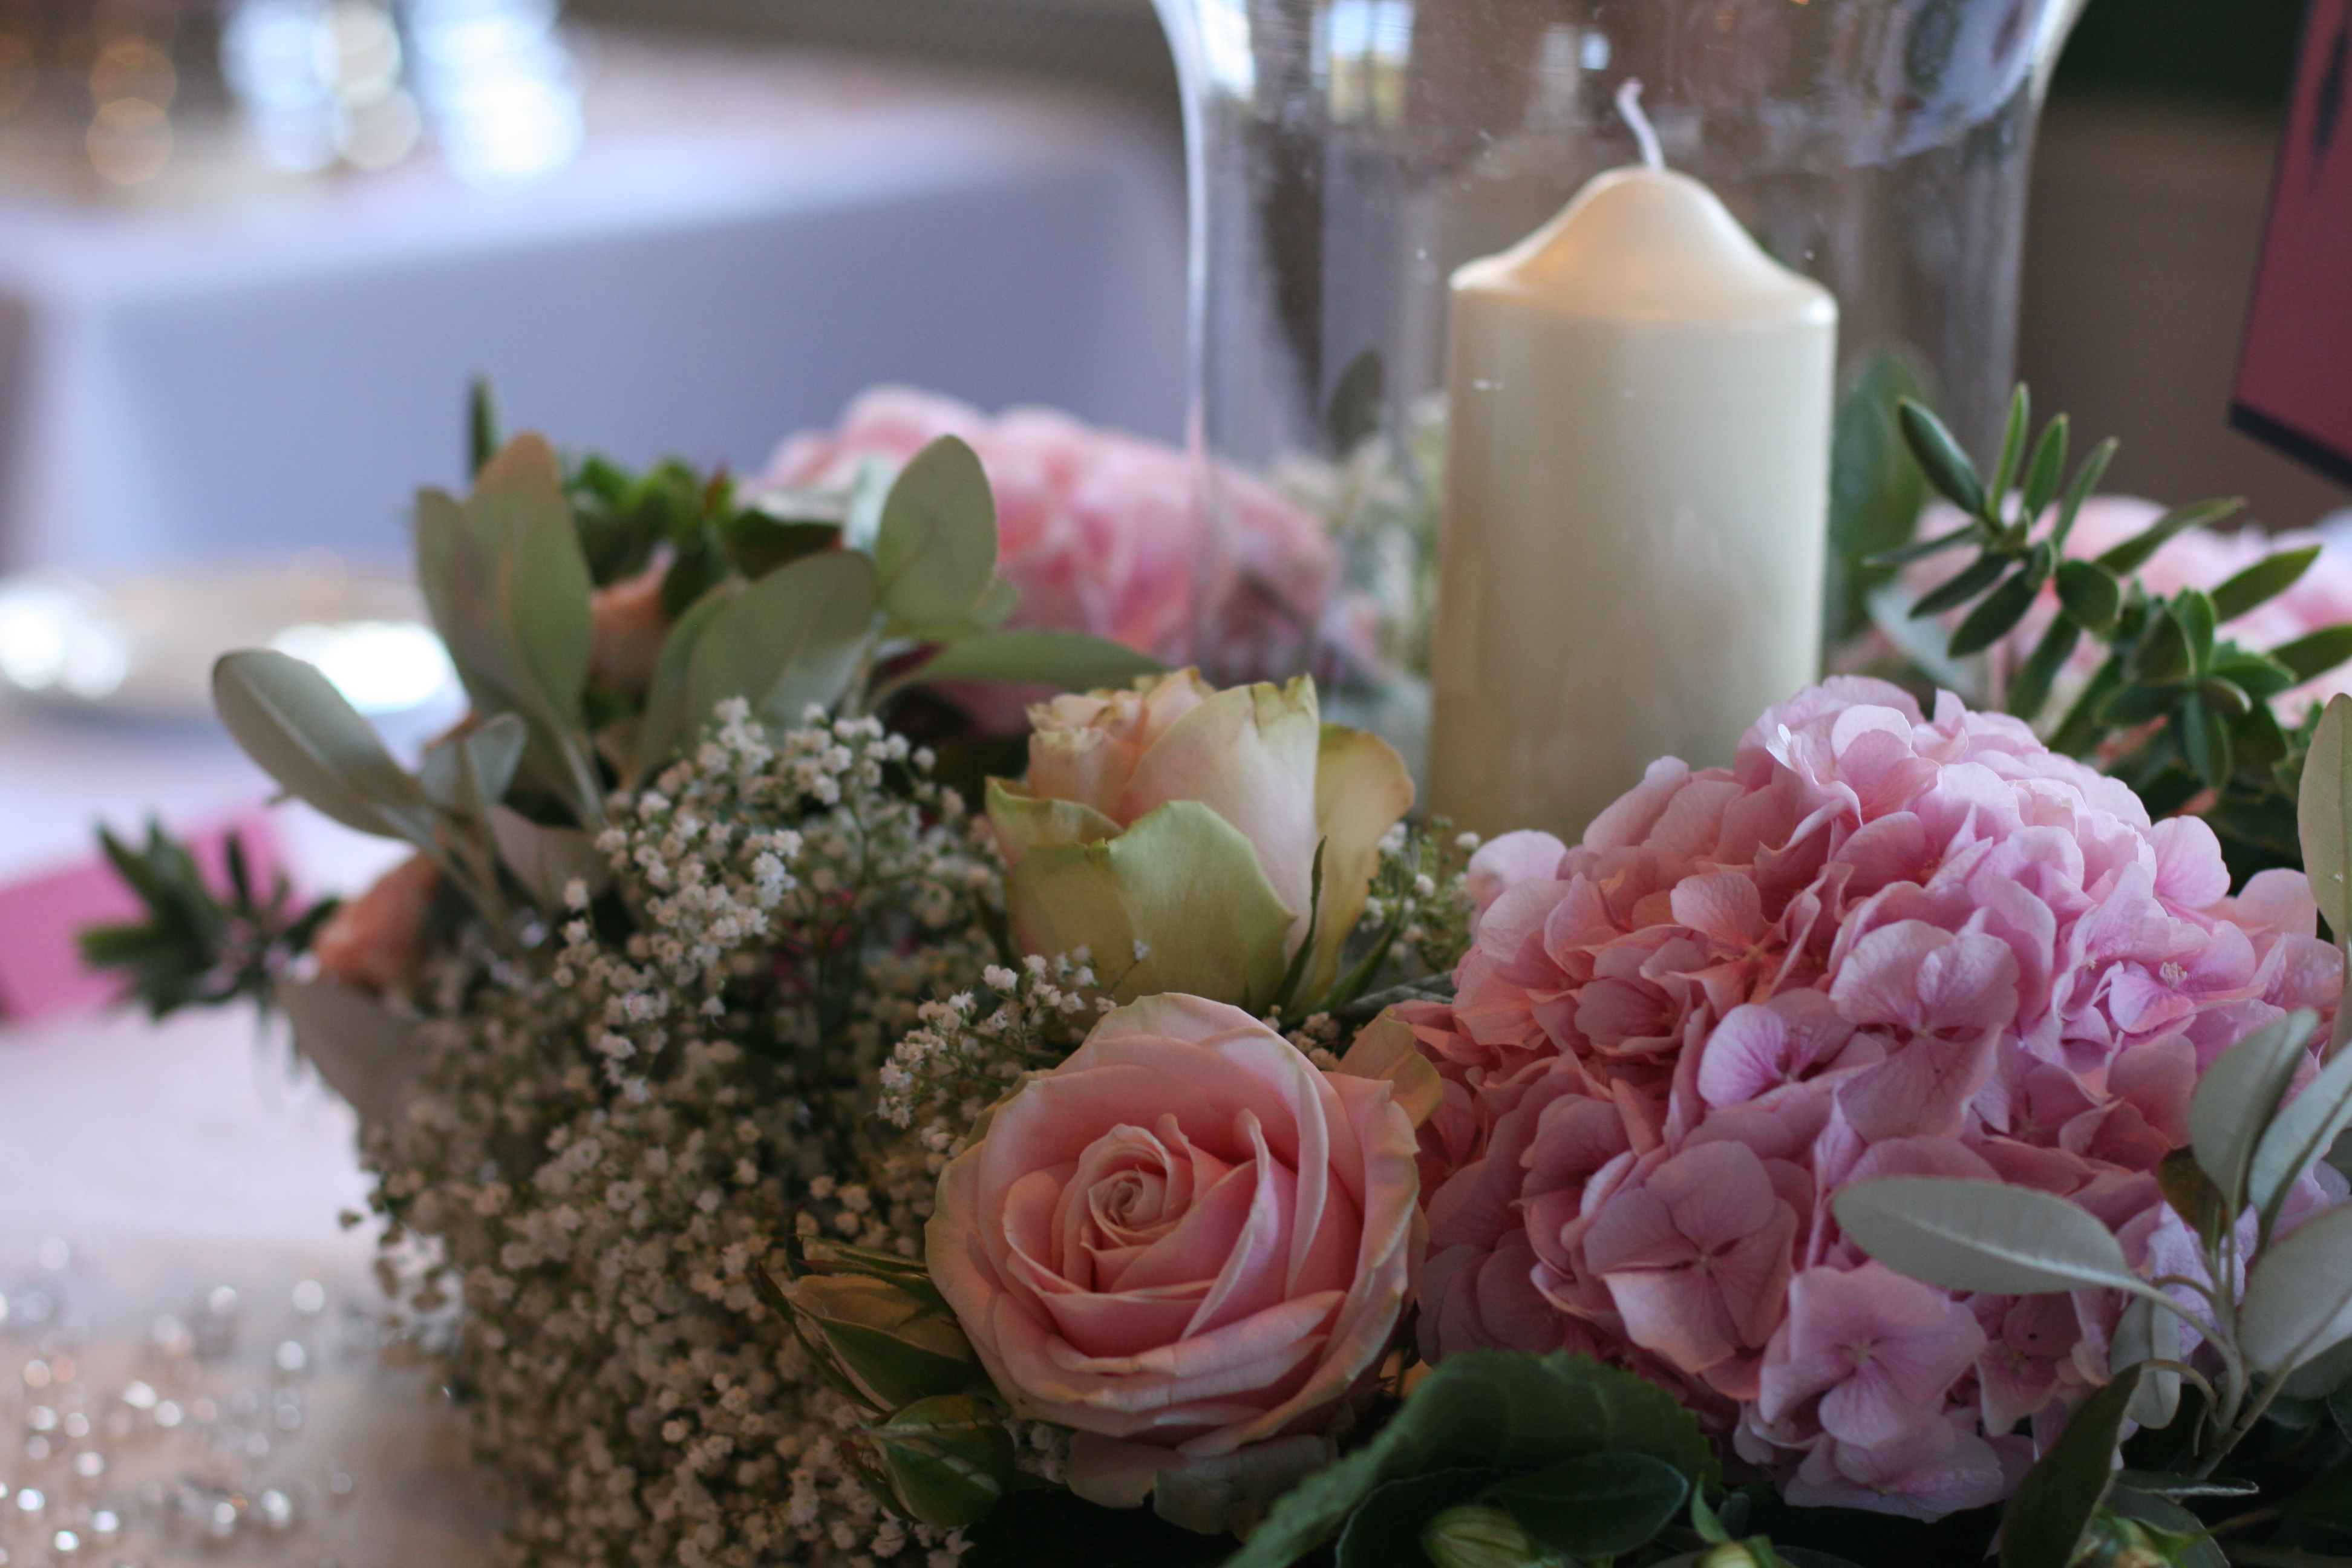 Wedding flowers edinburgh archives flowers by monica wylie romantic table decoration with pink roses hydrangea alstromeria gypsophila hebe and eucalyptus junglespirit Images